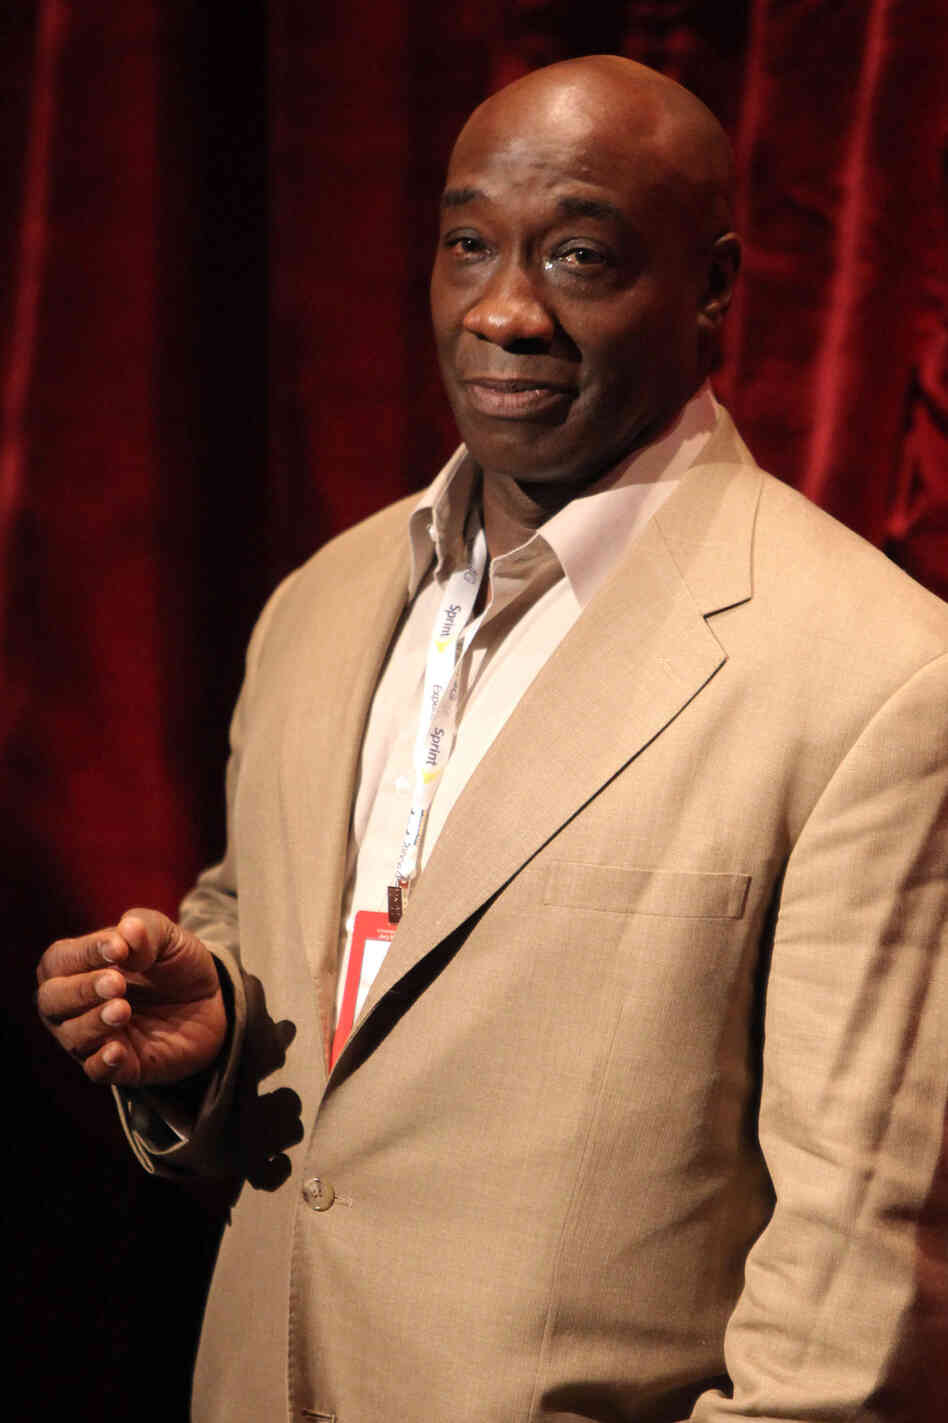 Michael Clarke Duncan, seen here in 2010, has died at age 54 in a Los Angeles hospital. The actor appeared in more than 70 films, including blockbusters such as Armageddon and Kung Fu Panda.